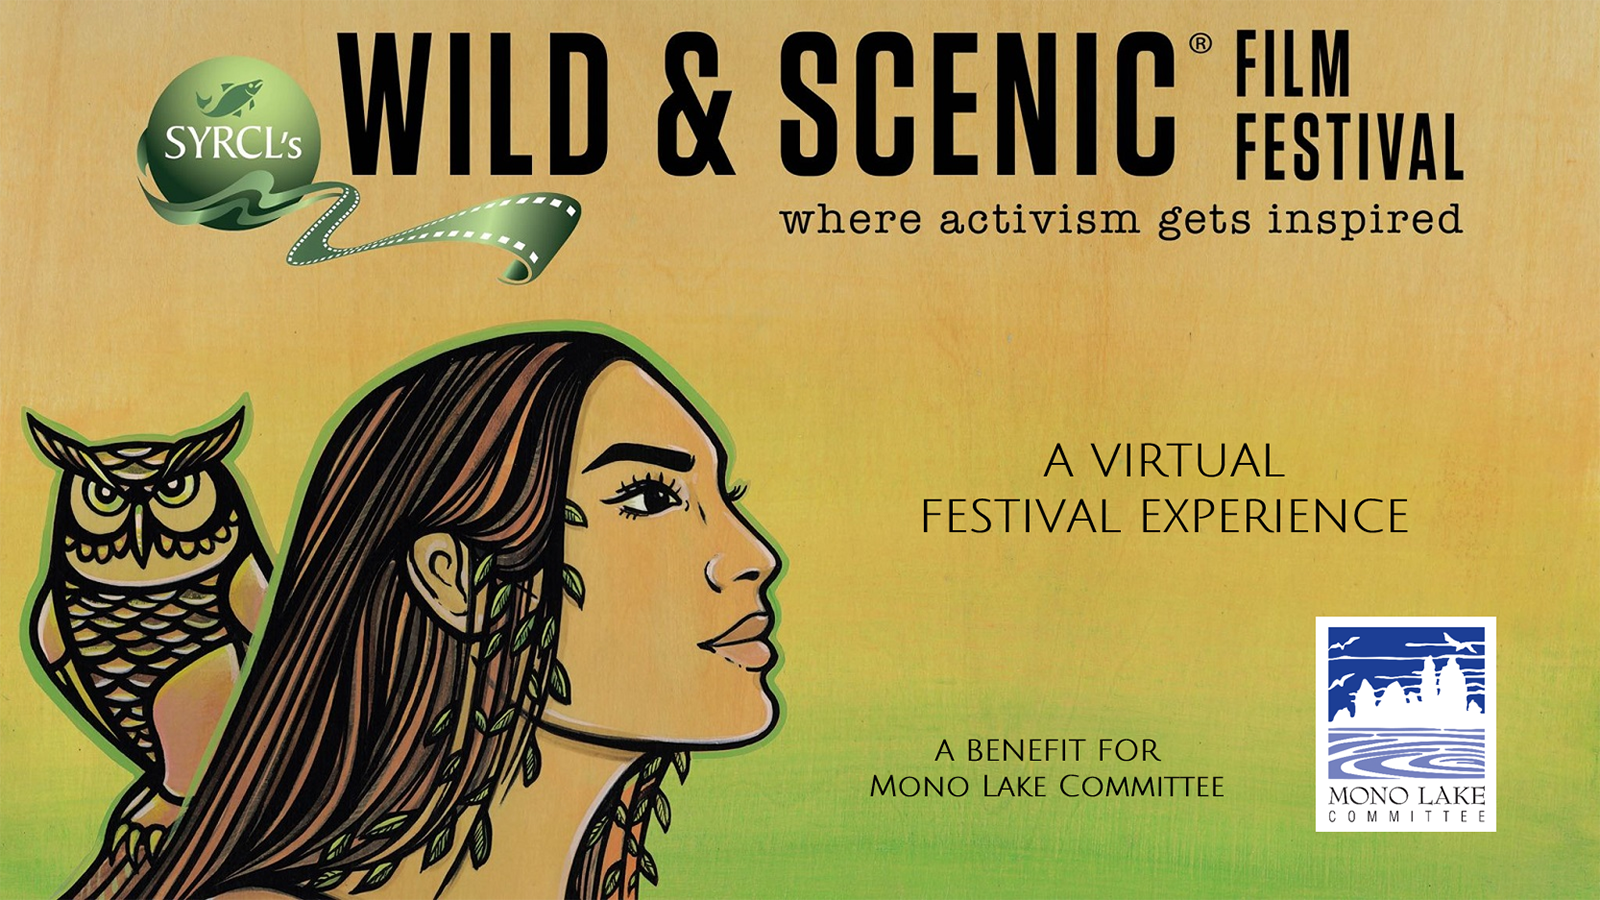 Mono Lake Committee Presents SYRCL's Wild & Scenic Film Festival On Tour